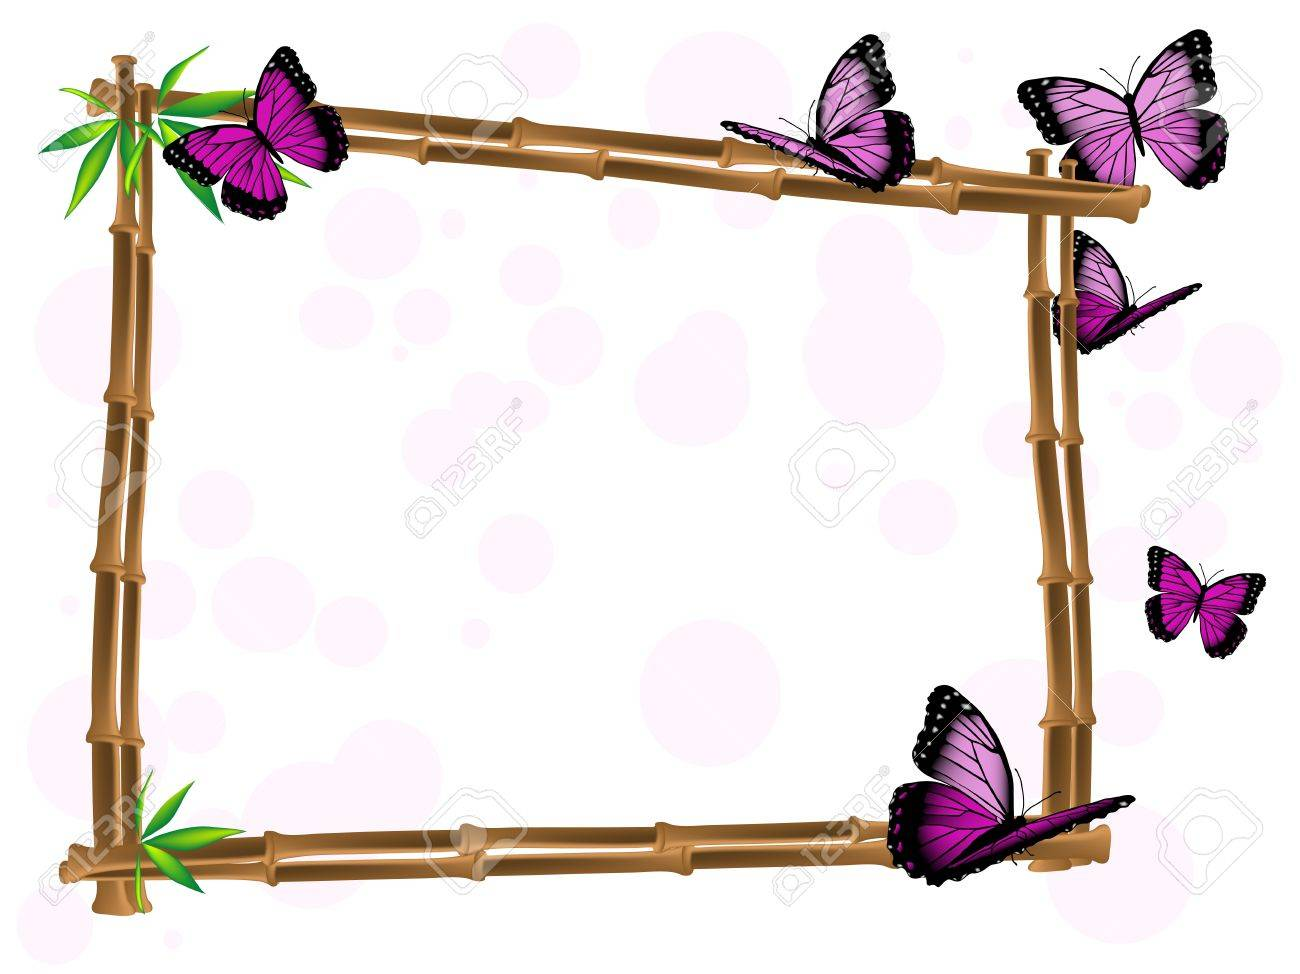 bamboo frame with leaves and pink butterflies stock vector 13445304